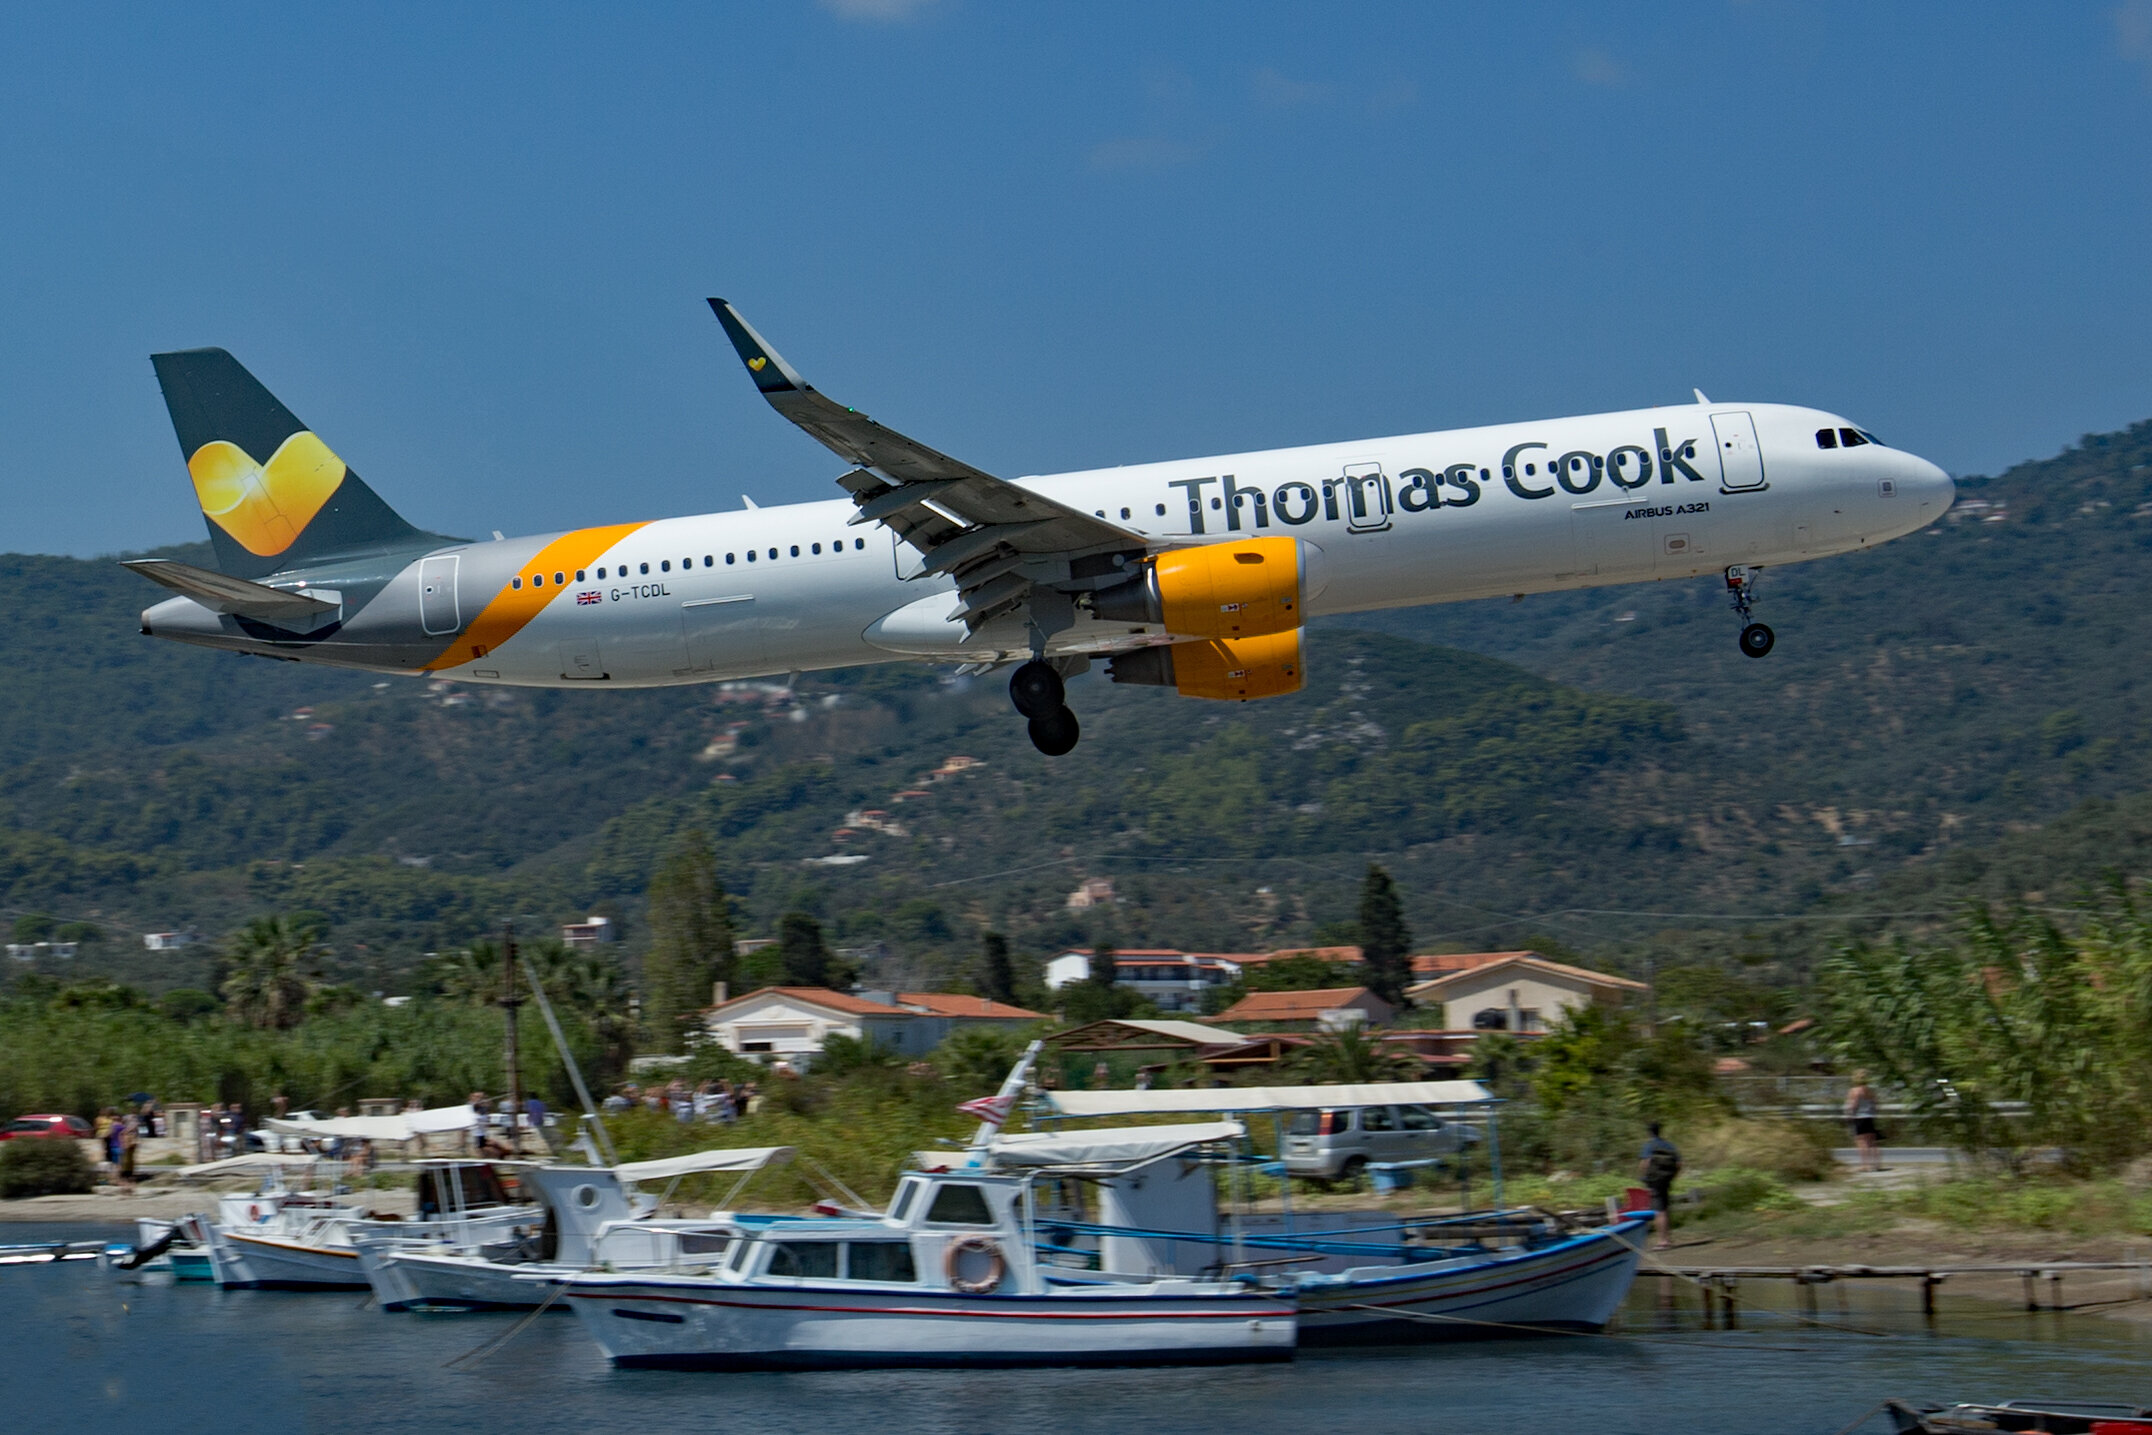 Thomas Cook A321 G-TCDL photographed from the harbour jetty. Peter H